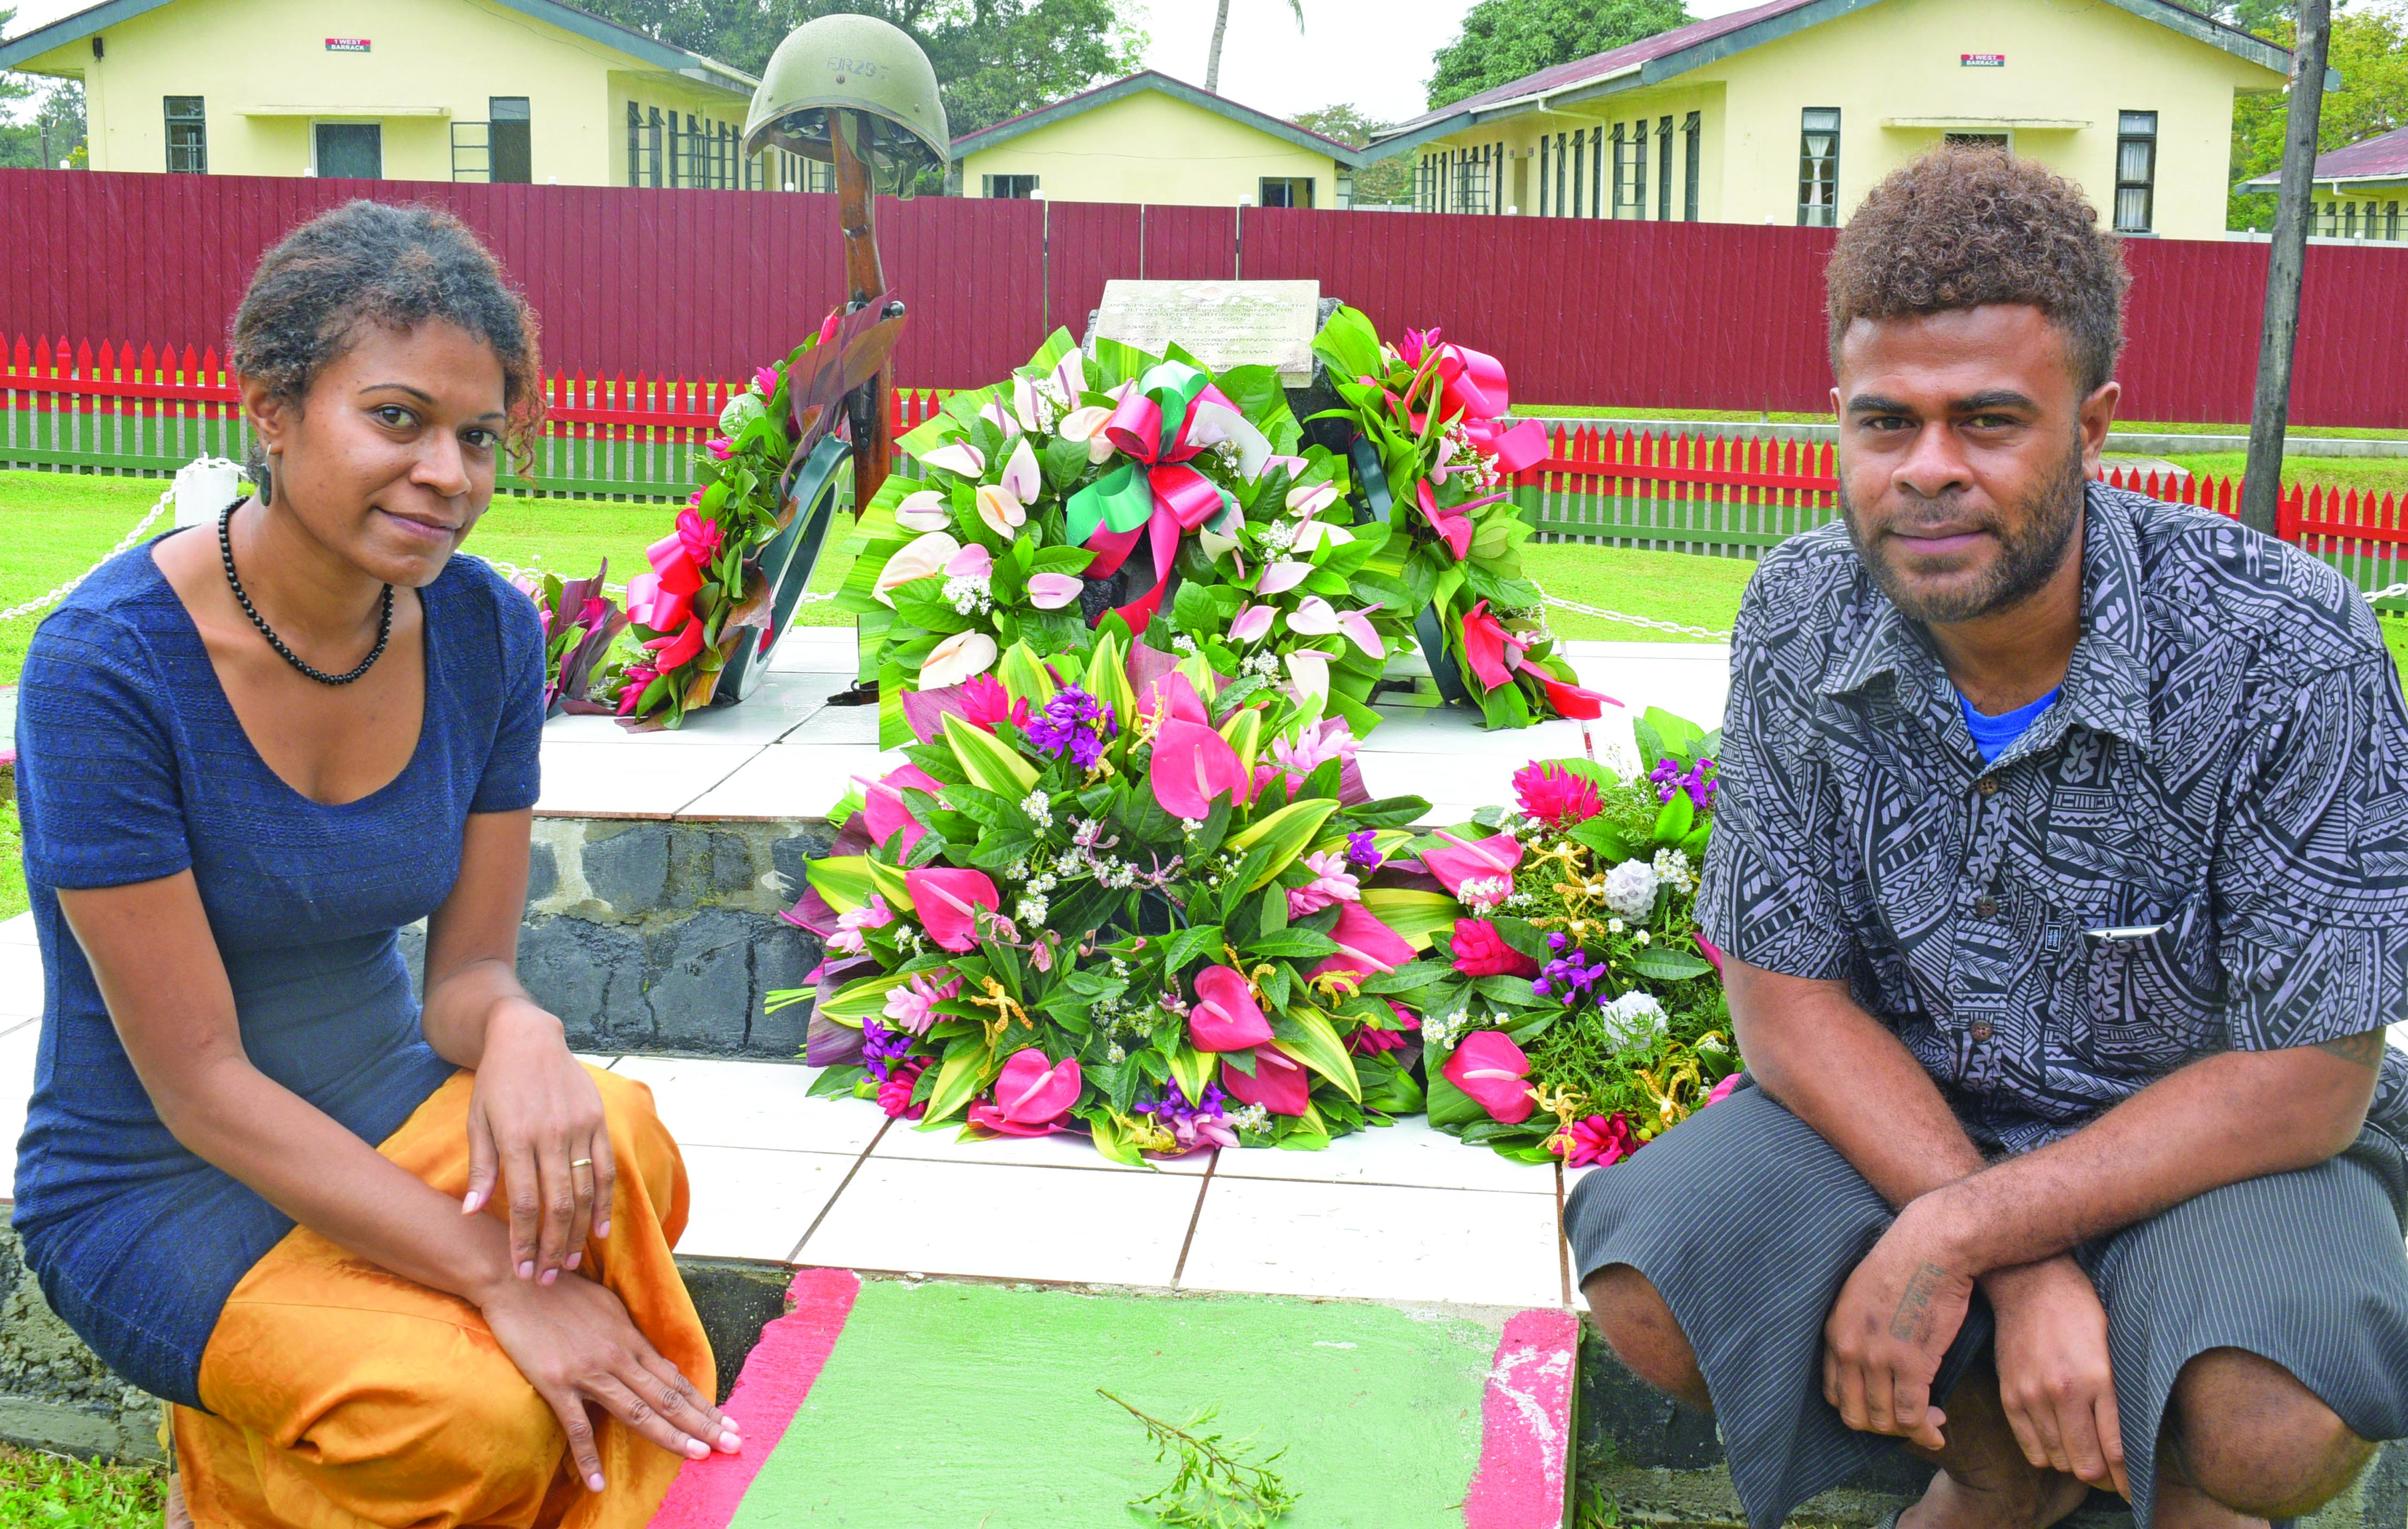 Ro Liku Vosailagi with her brother, Apisai Bogitini at the memorial site for their late father, Private Osea Rokosirinavosa, who was killed during the November 2000 mutiny at Queen Elizabeth Barracks in Nabua. Photo: Ronald Kumar